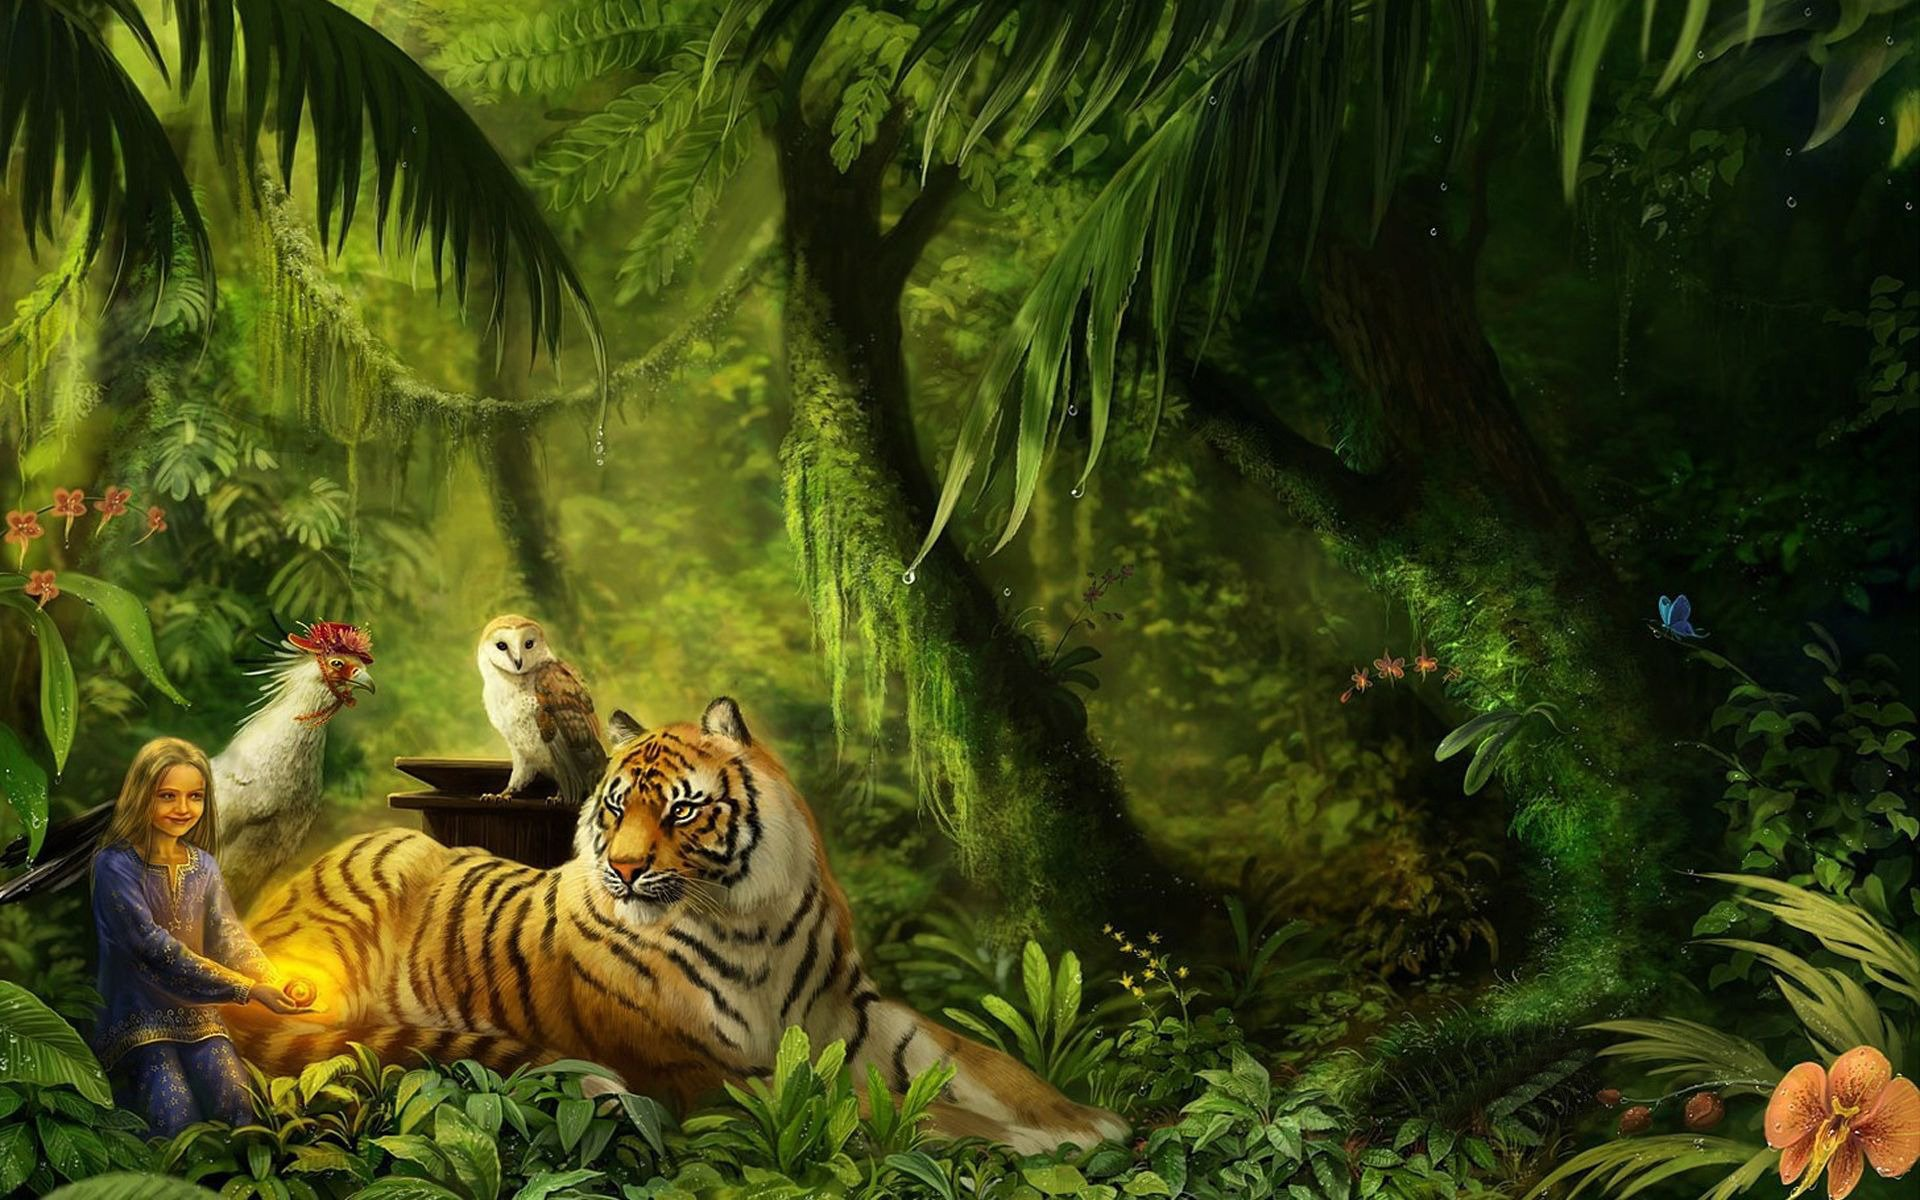 Jungle Wallpaper Desktop: Safari Animal Wallpaper